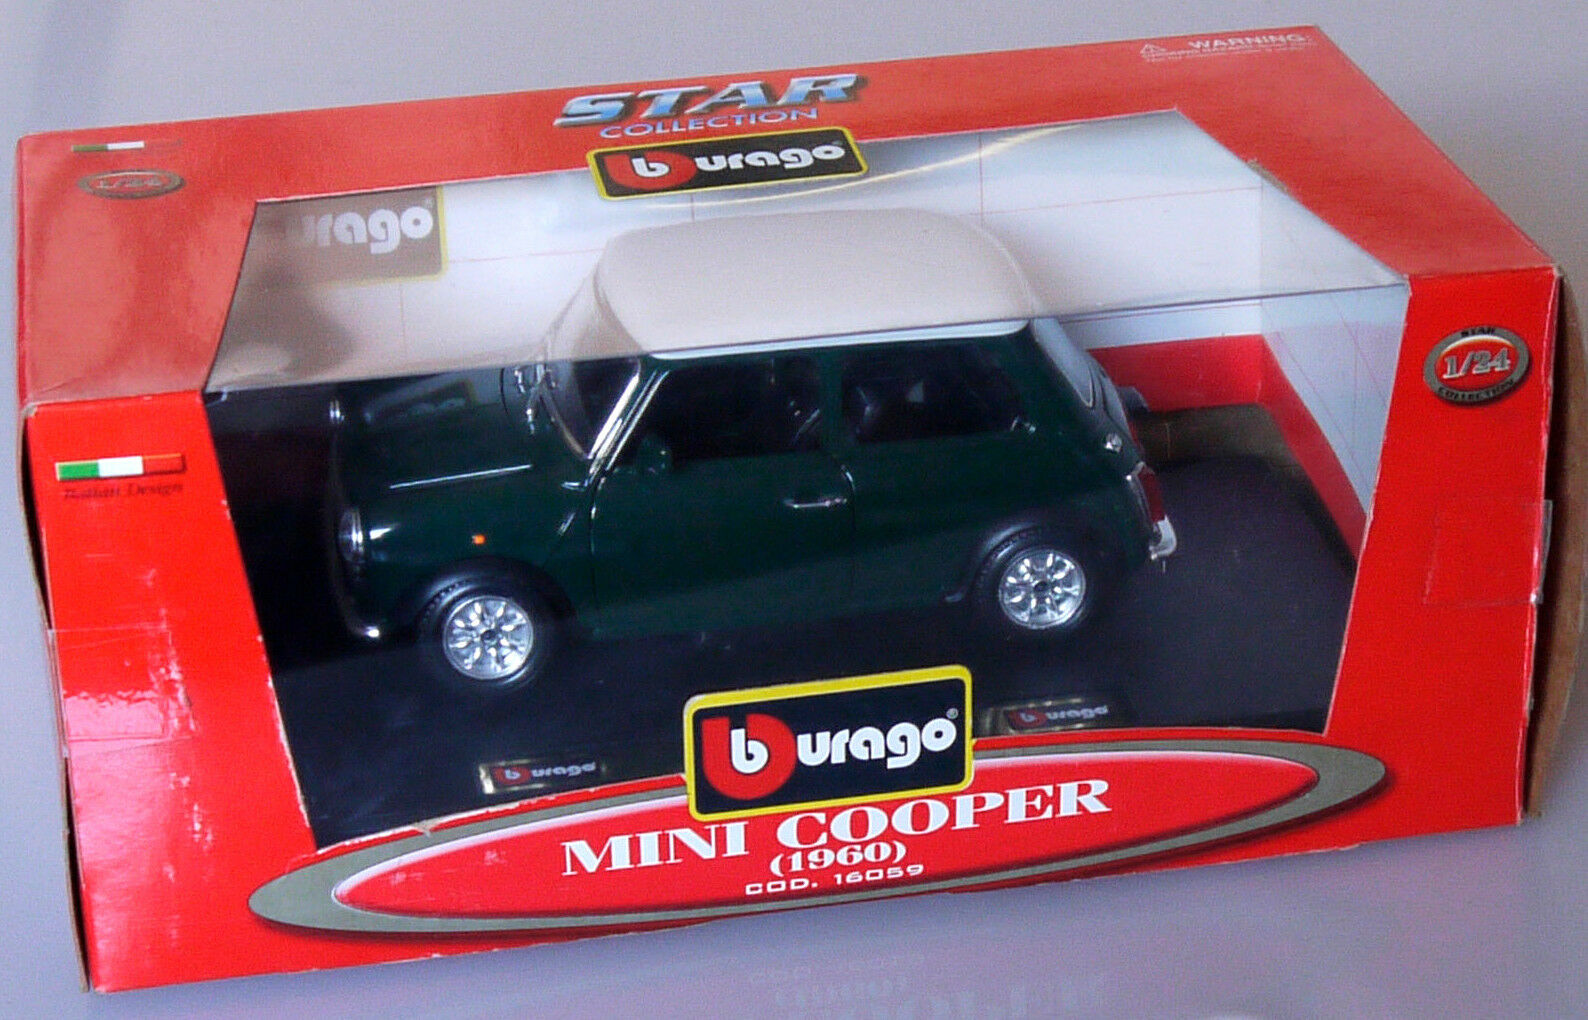 PRL) BBURAGO BURAGO 1 24 METAL DIE CAST COD 16059 MINI COOPER 1960 STAR COLLECT